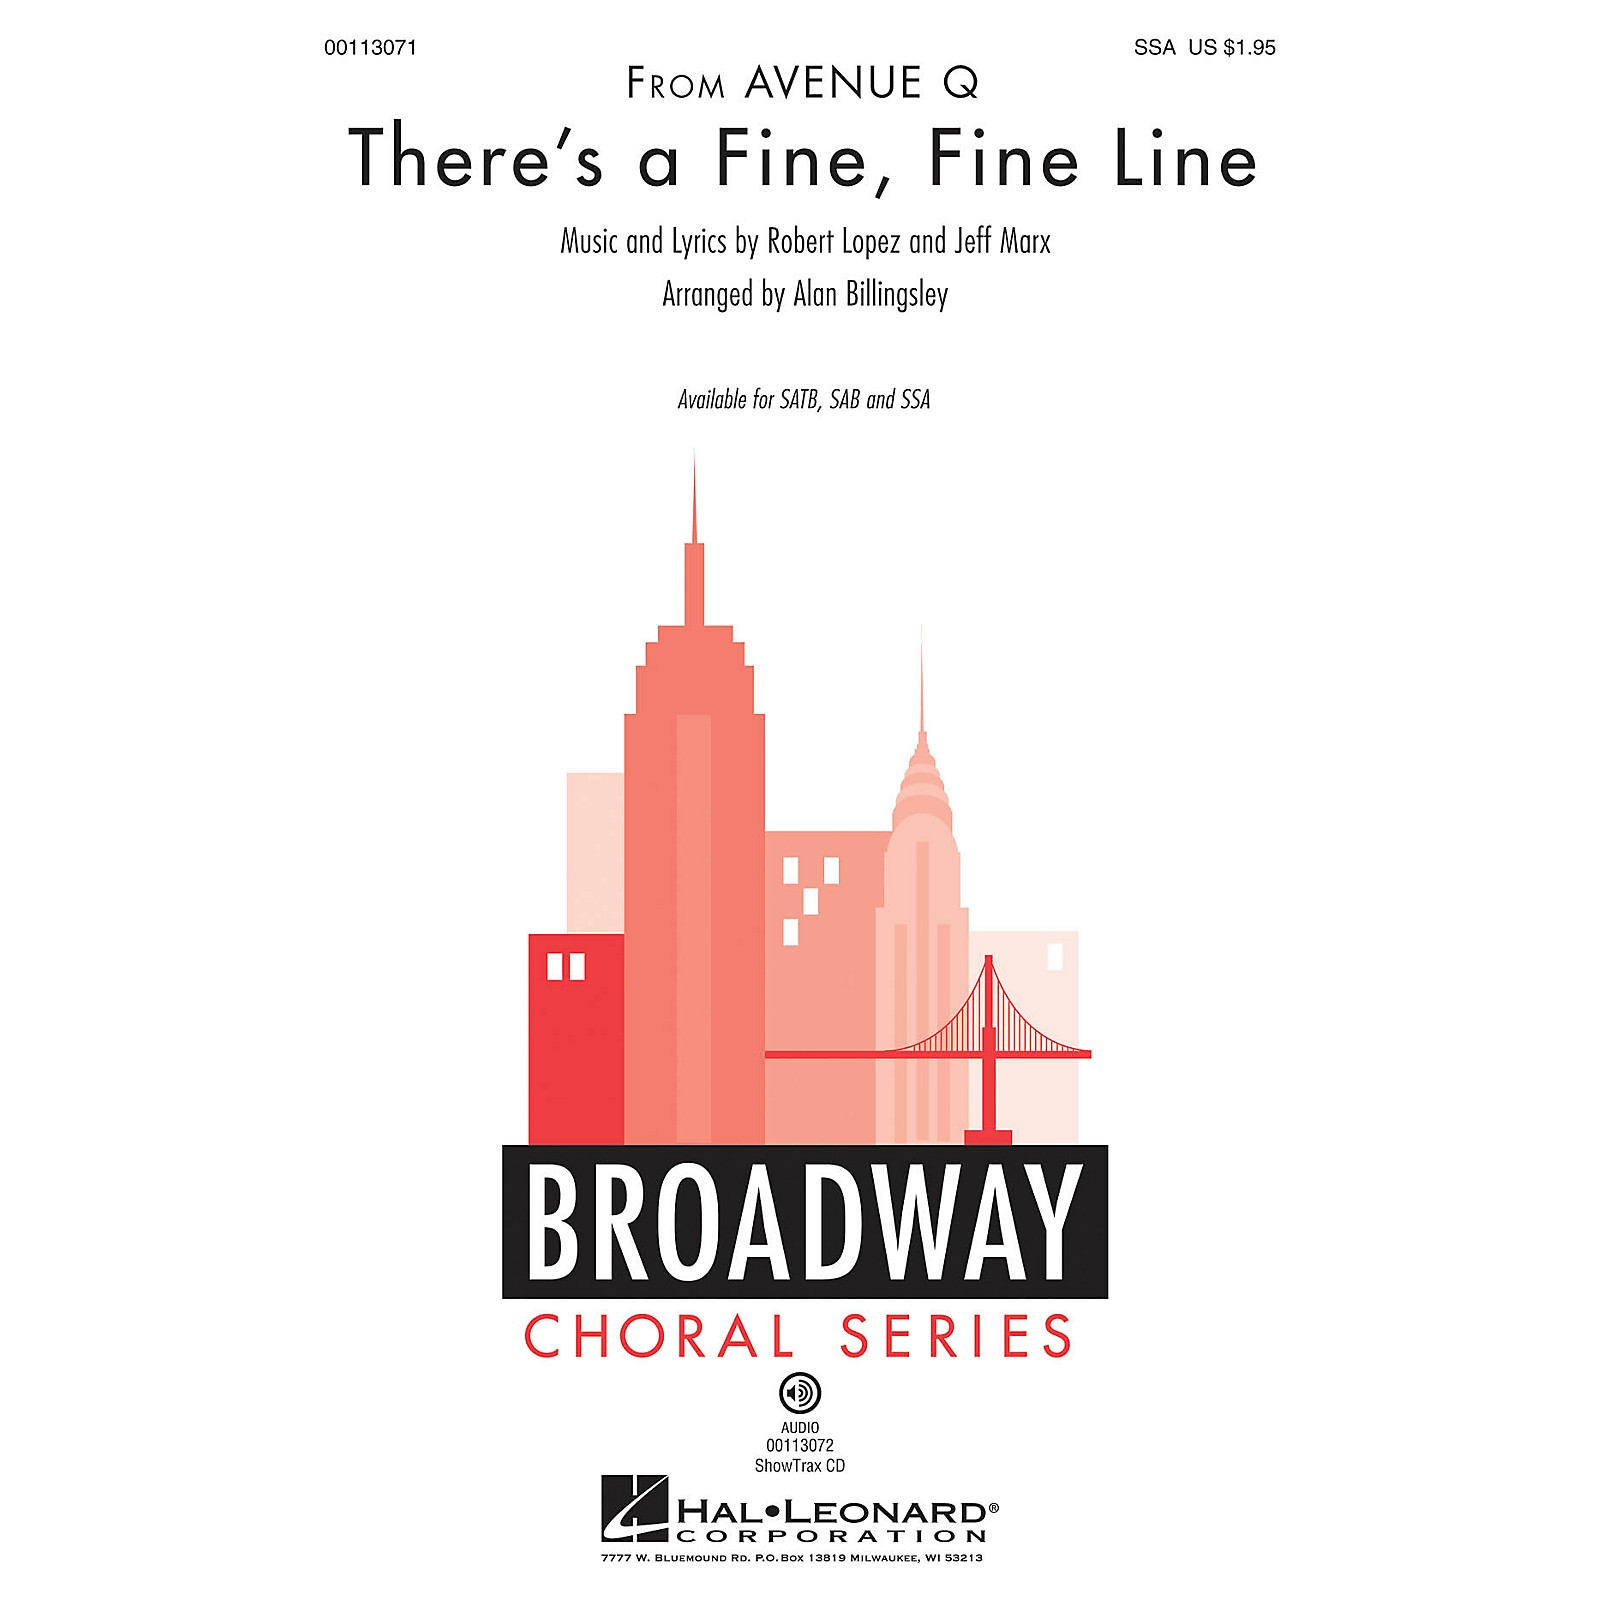 Hal Leonard There's a Fine, Fine Line (from Avenue Q) SSA by Avenue Q arranged by Alan Billingsley